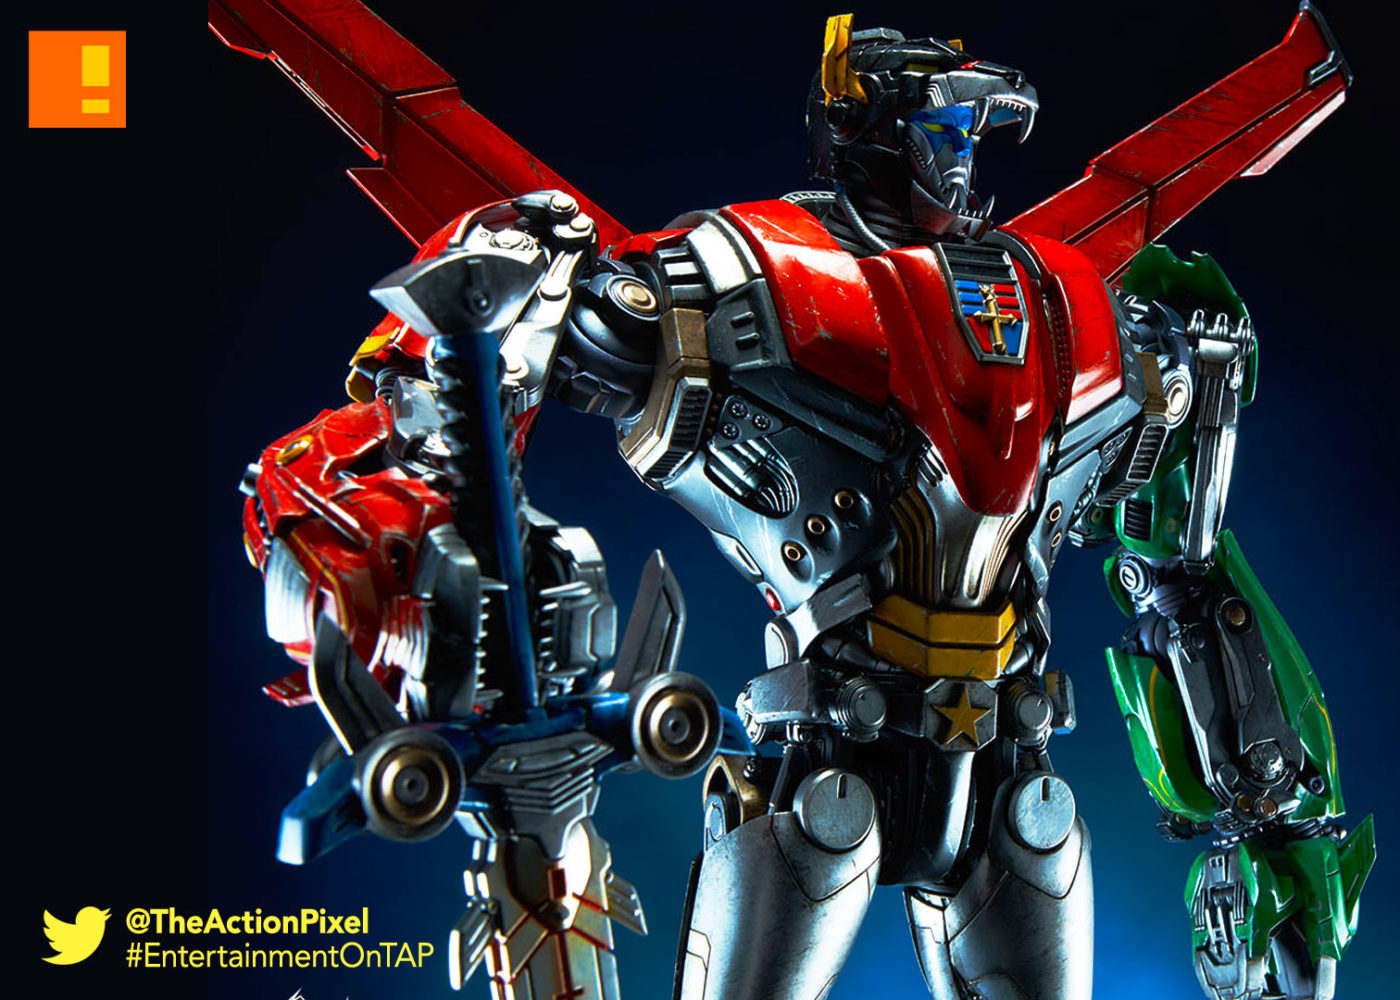 voltron, universal, the action pixel, dreamworks animation, entertainment on tap